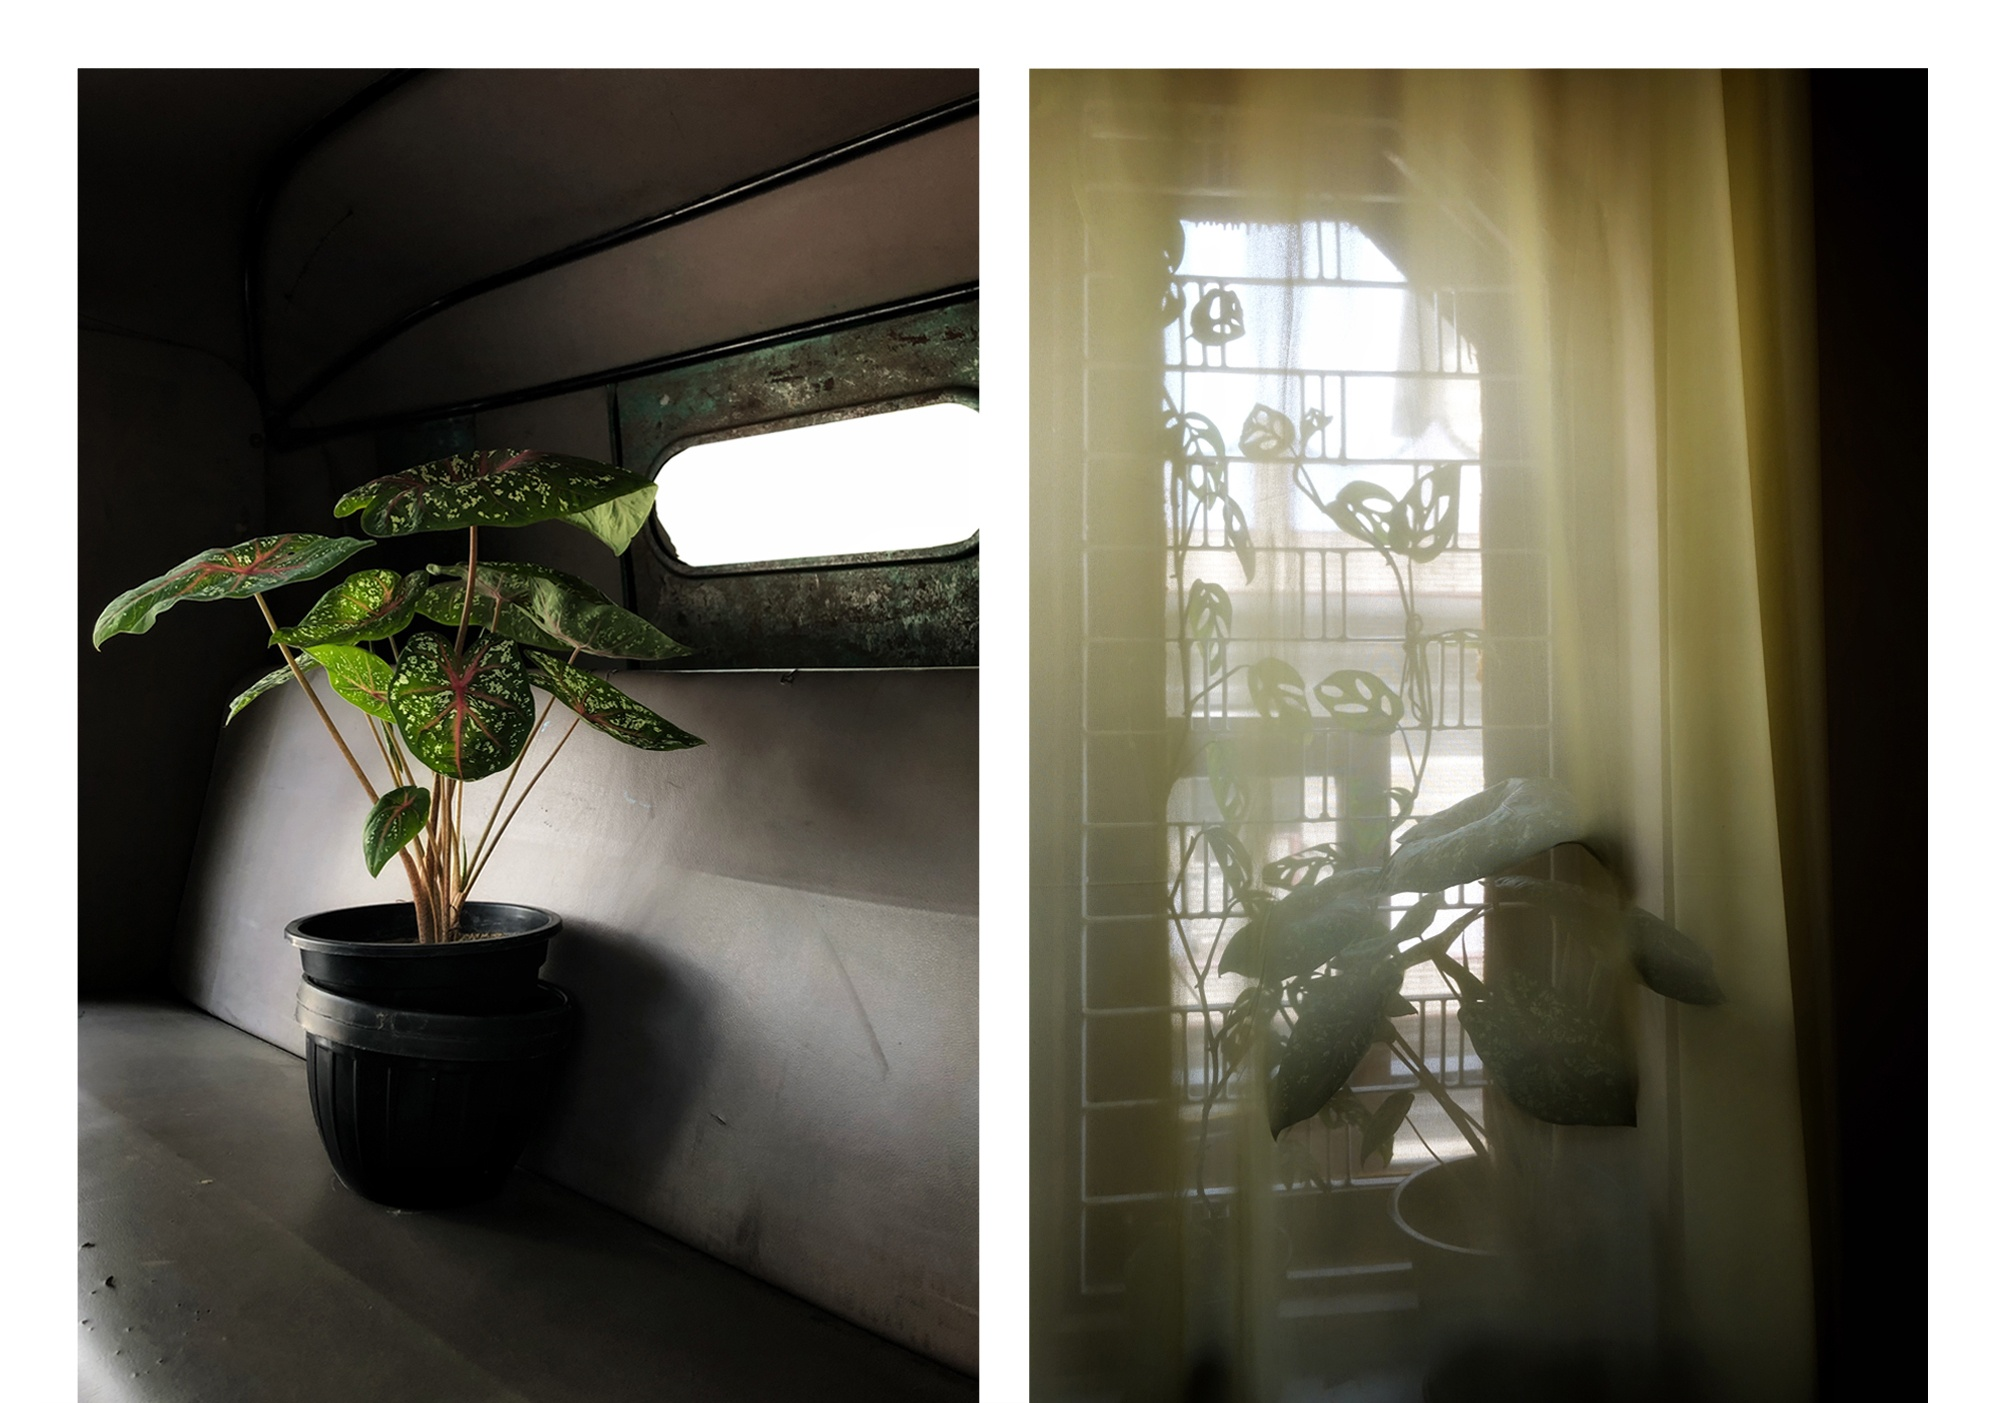 Menty_I_Brought_Home_A_New_Plant_1_RESIZE